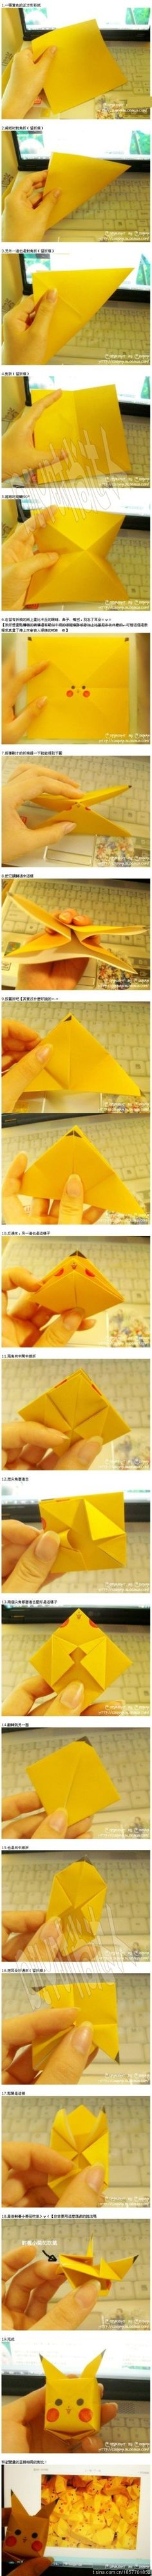 Pikachu origami tutorial. I need to try this.